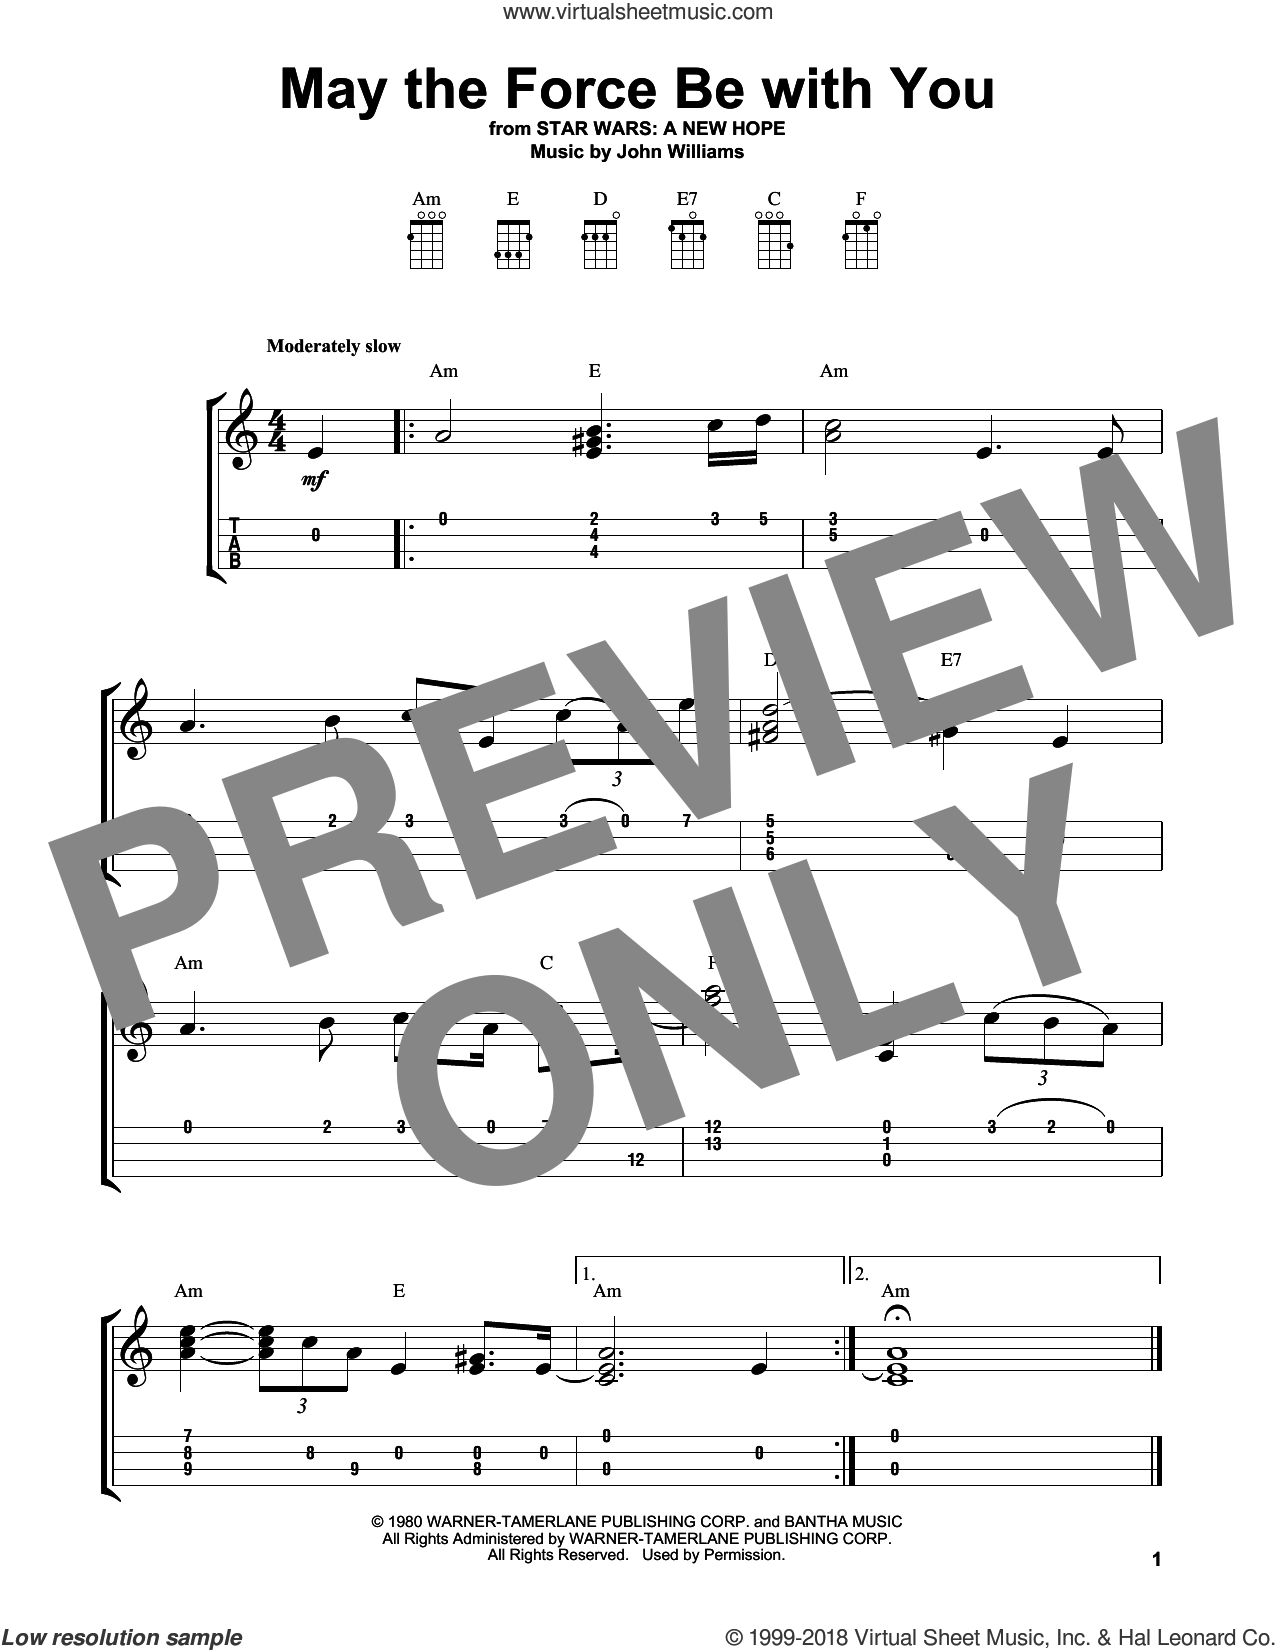 May The Force Be With You sheet music for ukulele by John Williams, intermediate skill level